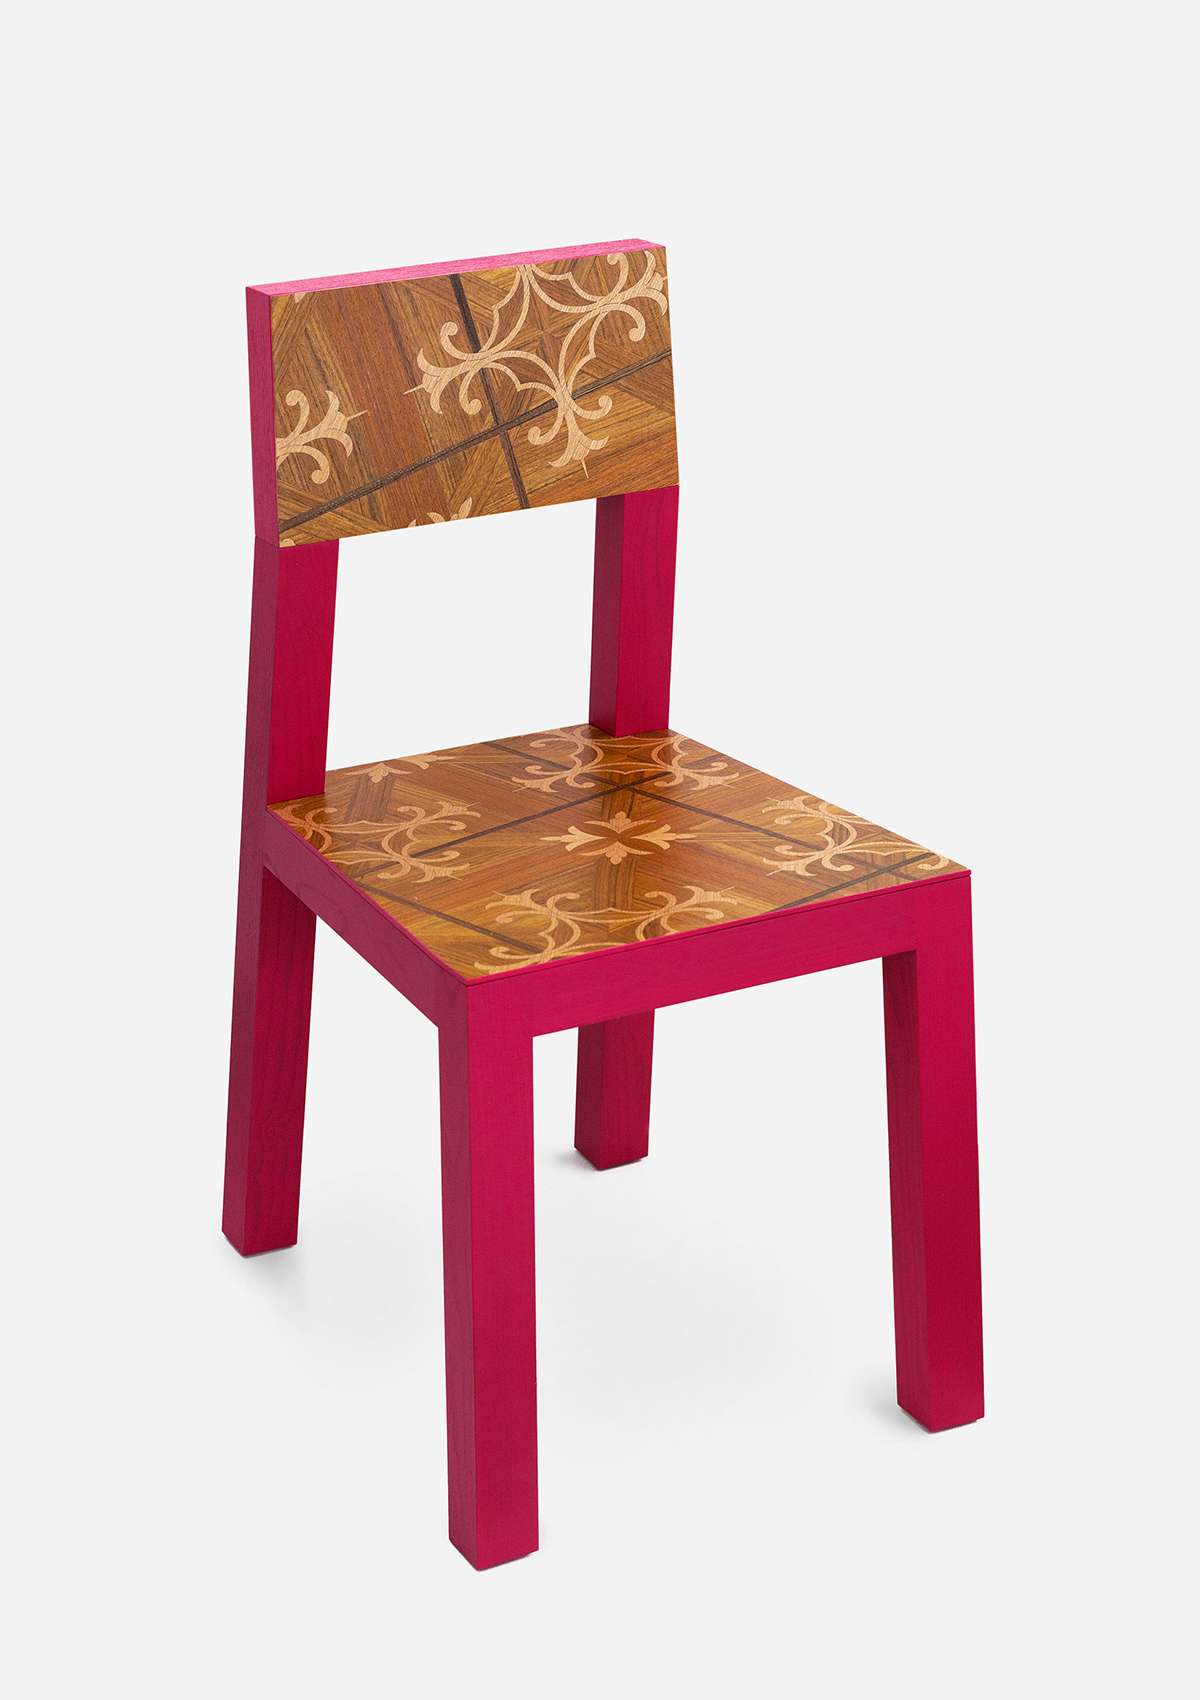 INLAY CHAIR - Marcantonio design